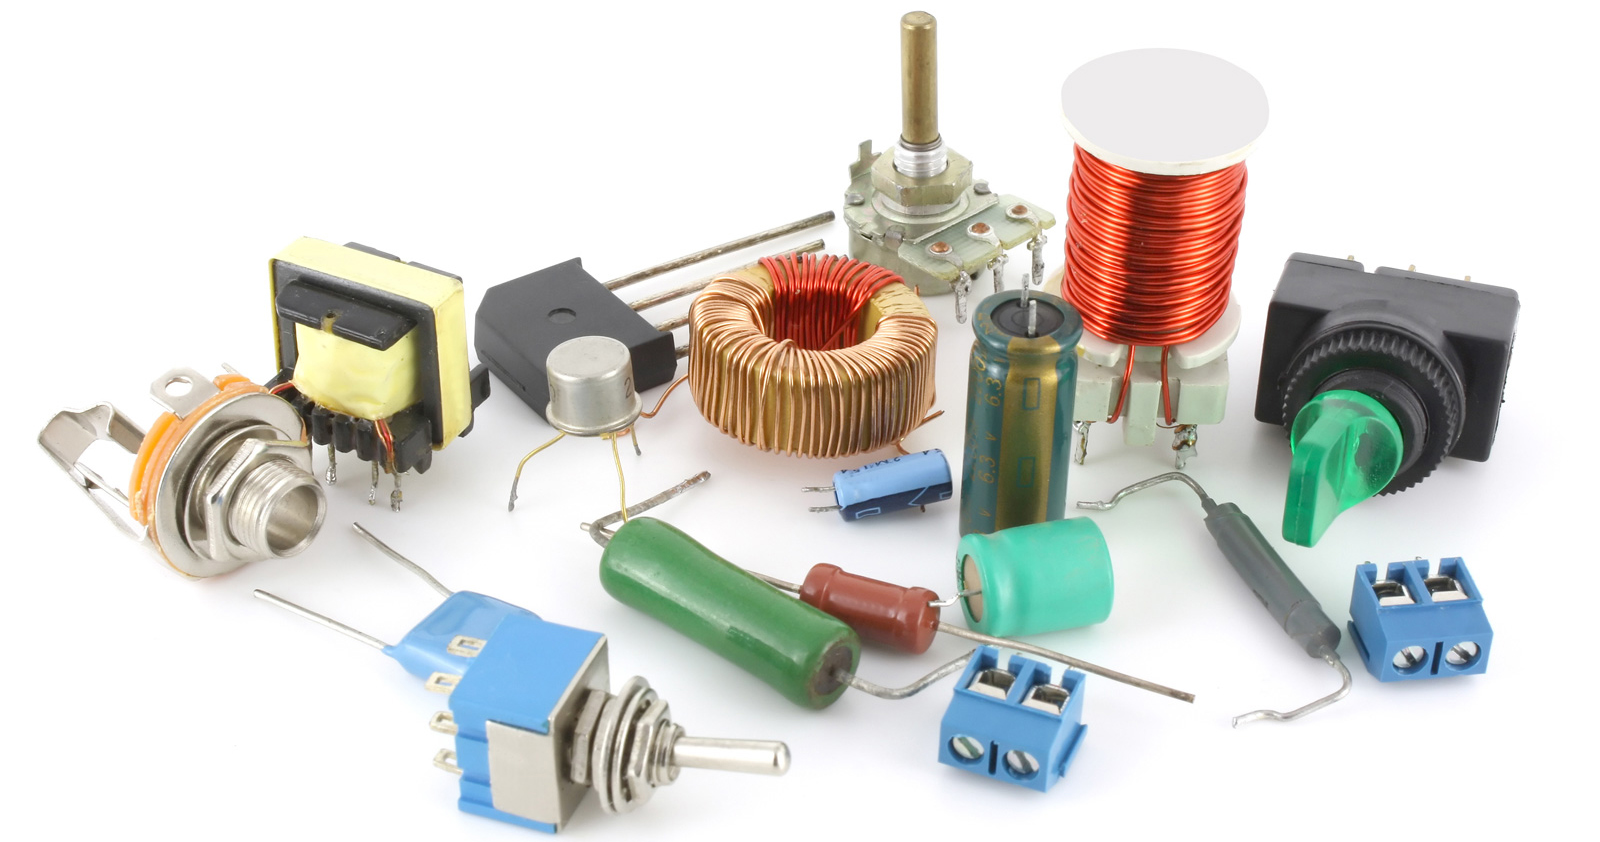 Shop Electronics, Wiring & Commodities Inventory in Rochester, NY